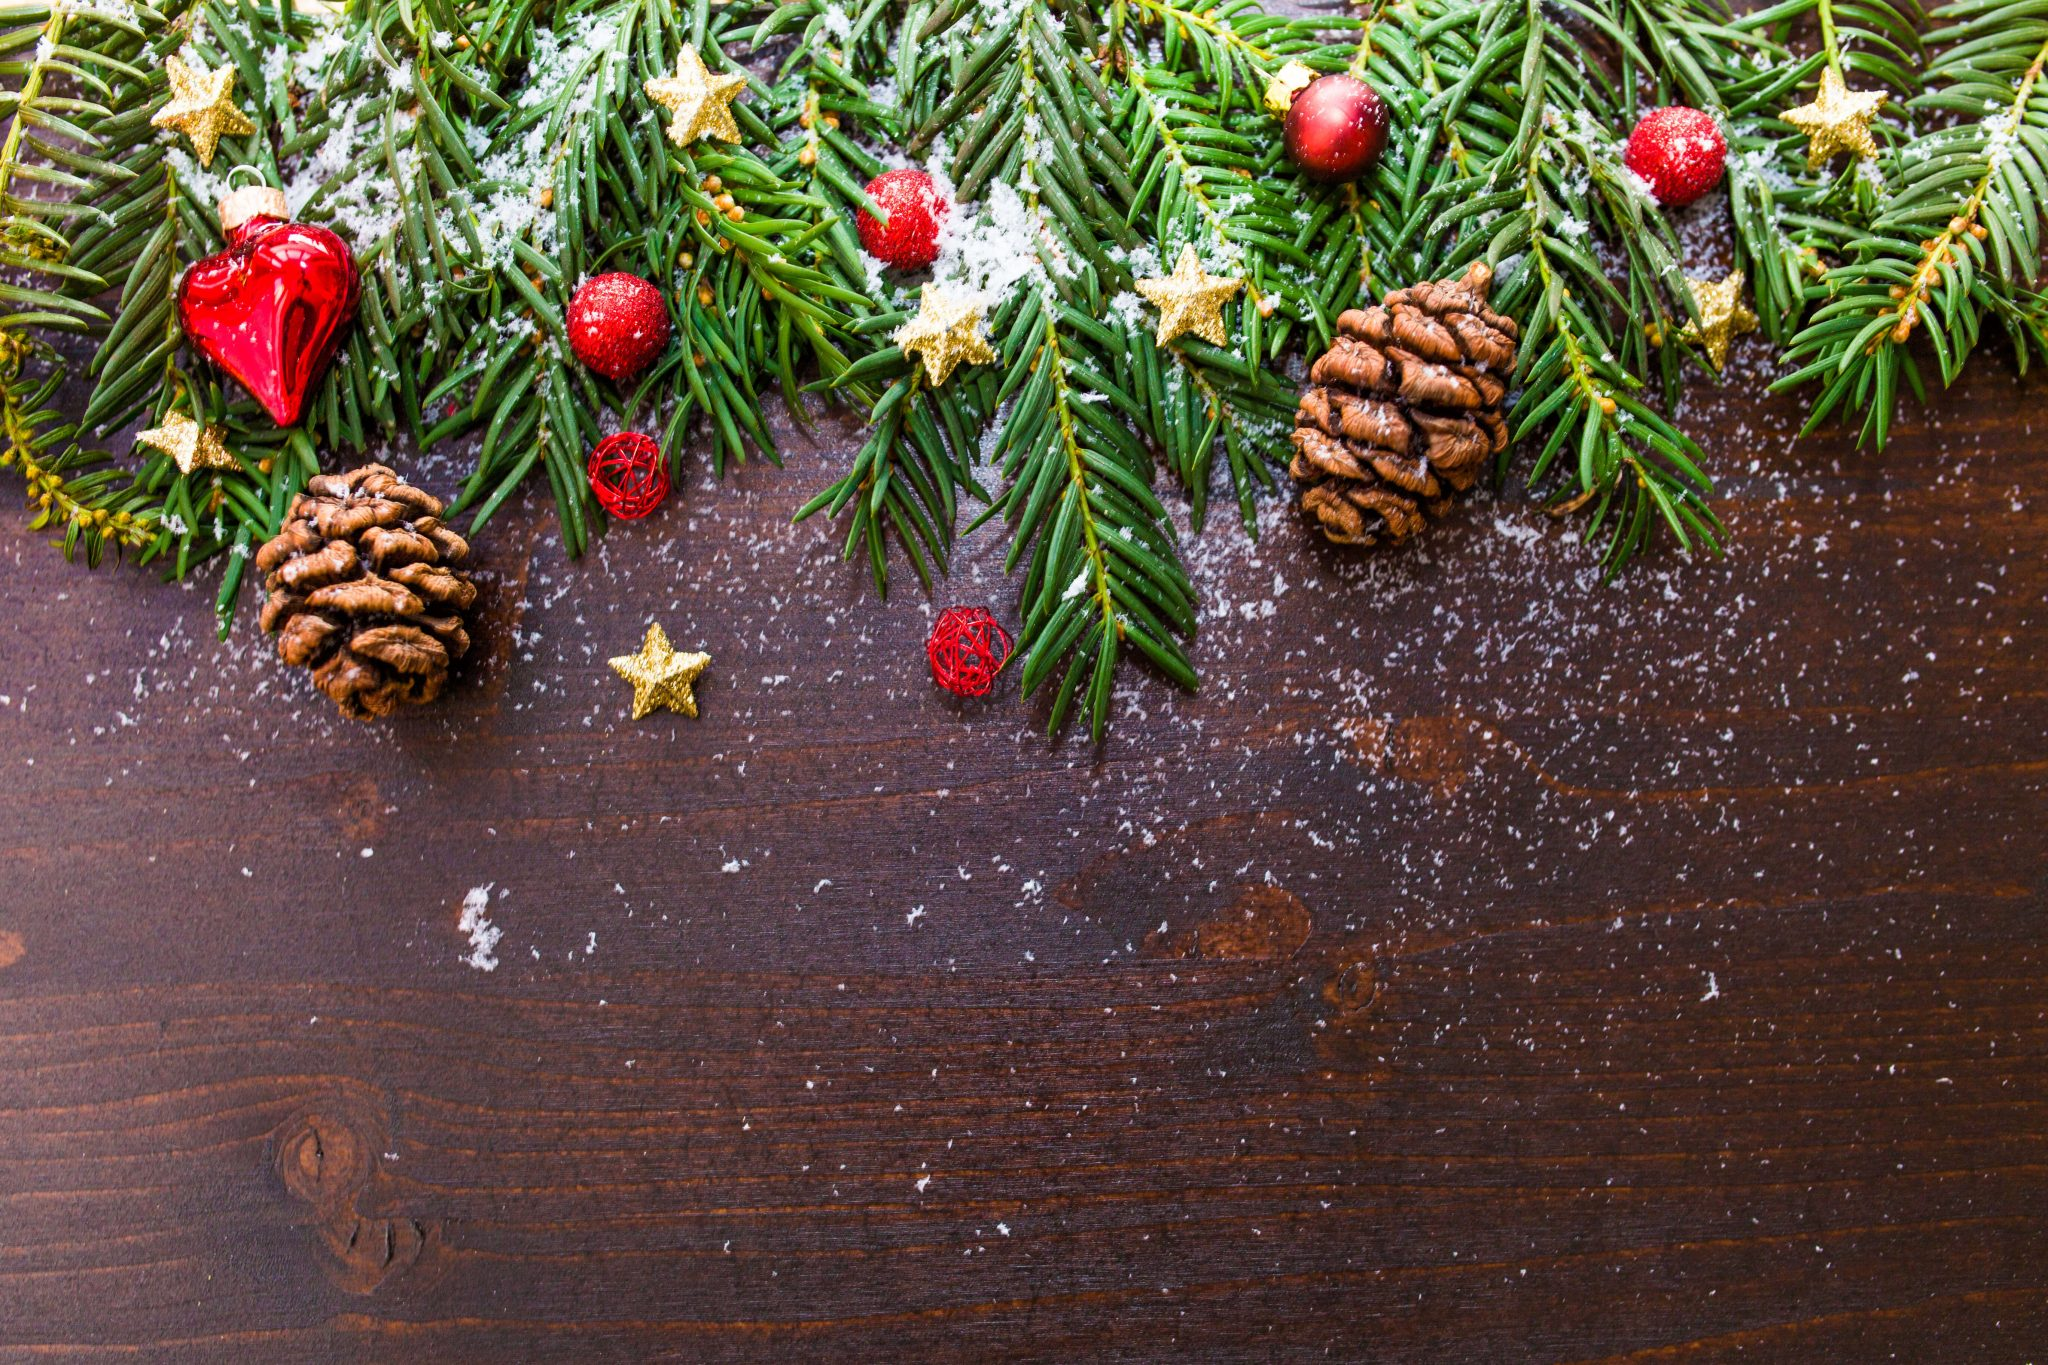 Clutter Free Holiday Gift Ideas- Sustainable, Green, and Sure to be Appreciated!